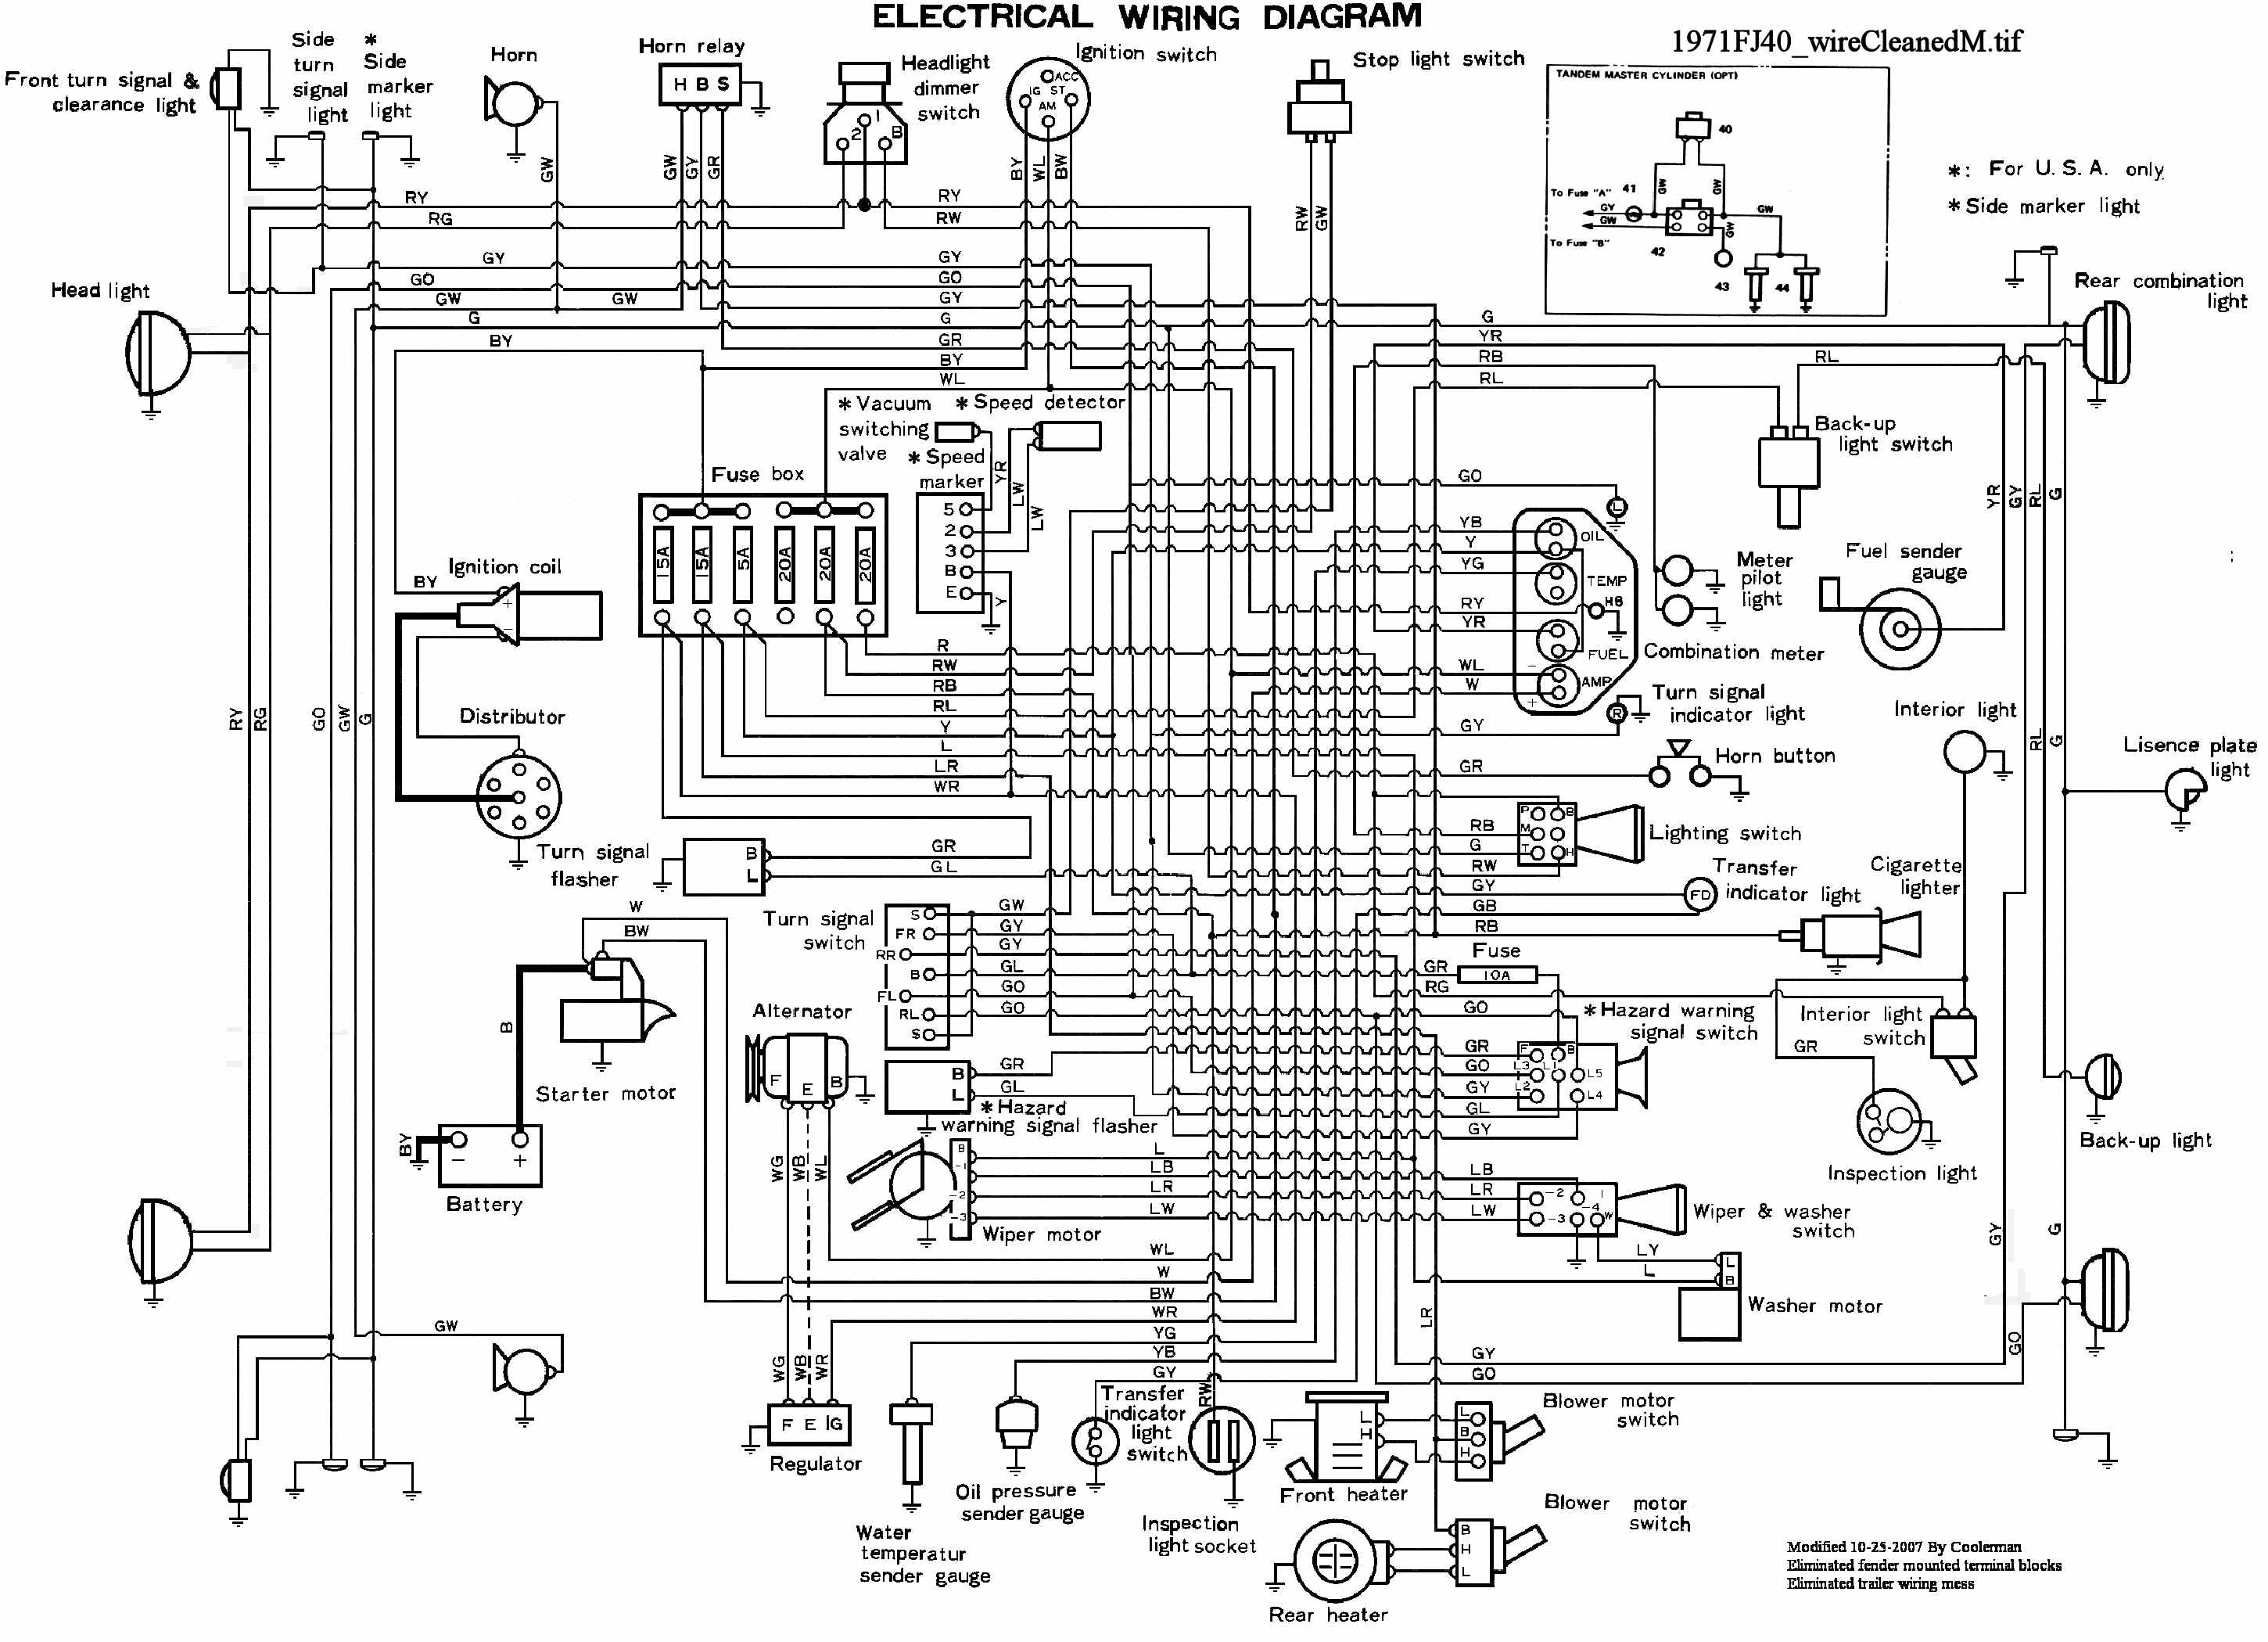 68 ford bronco wiring diagram